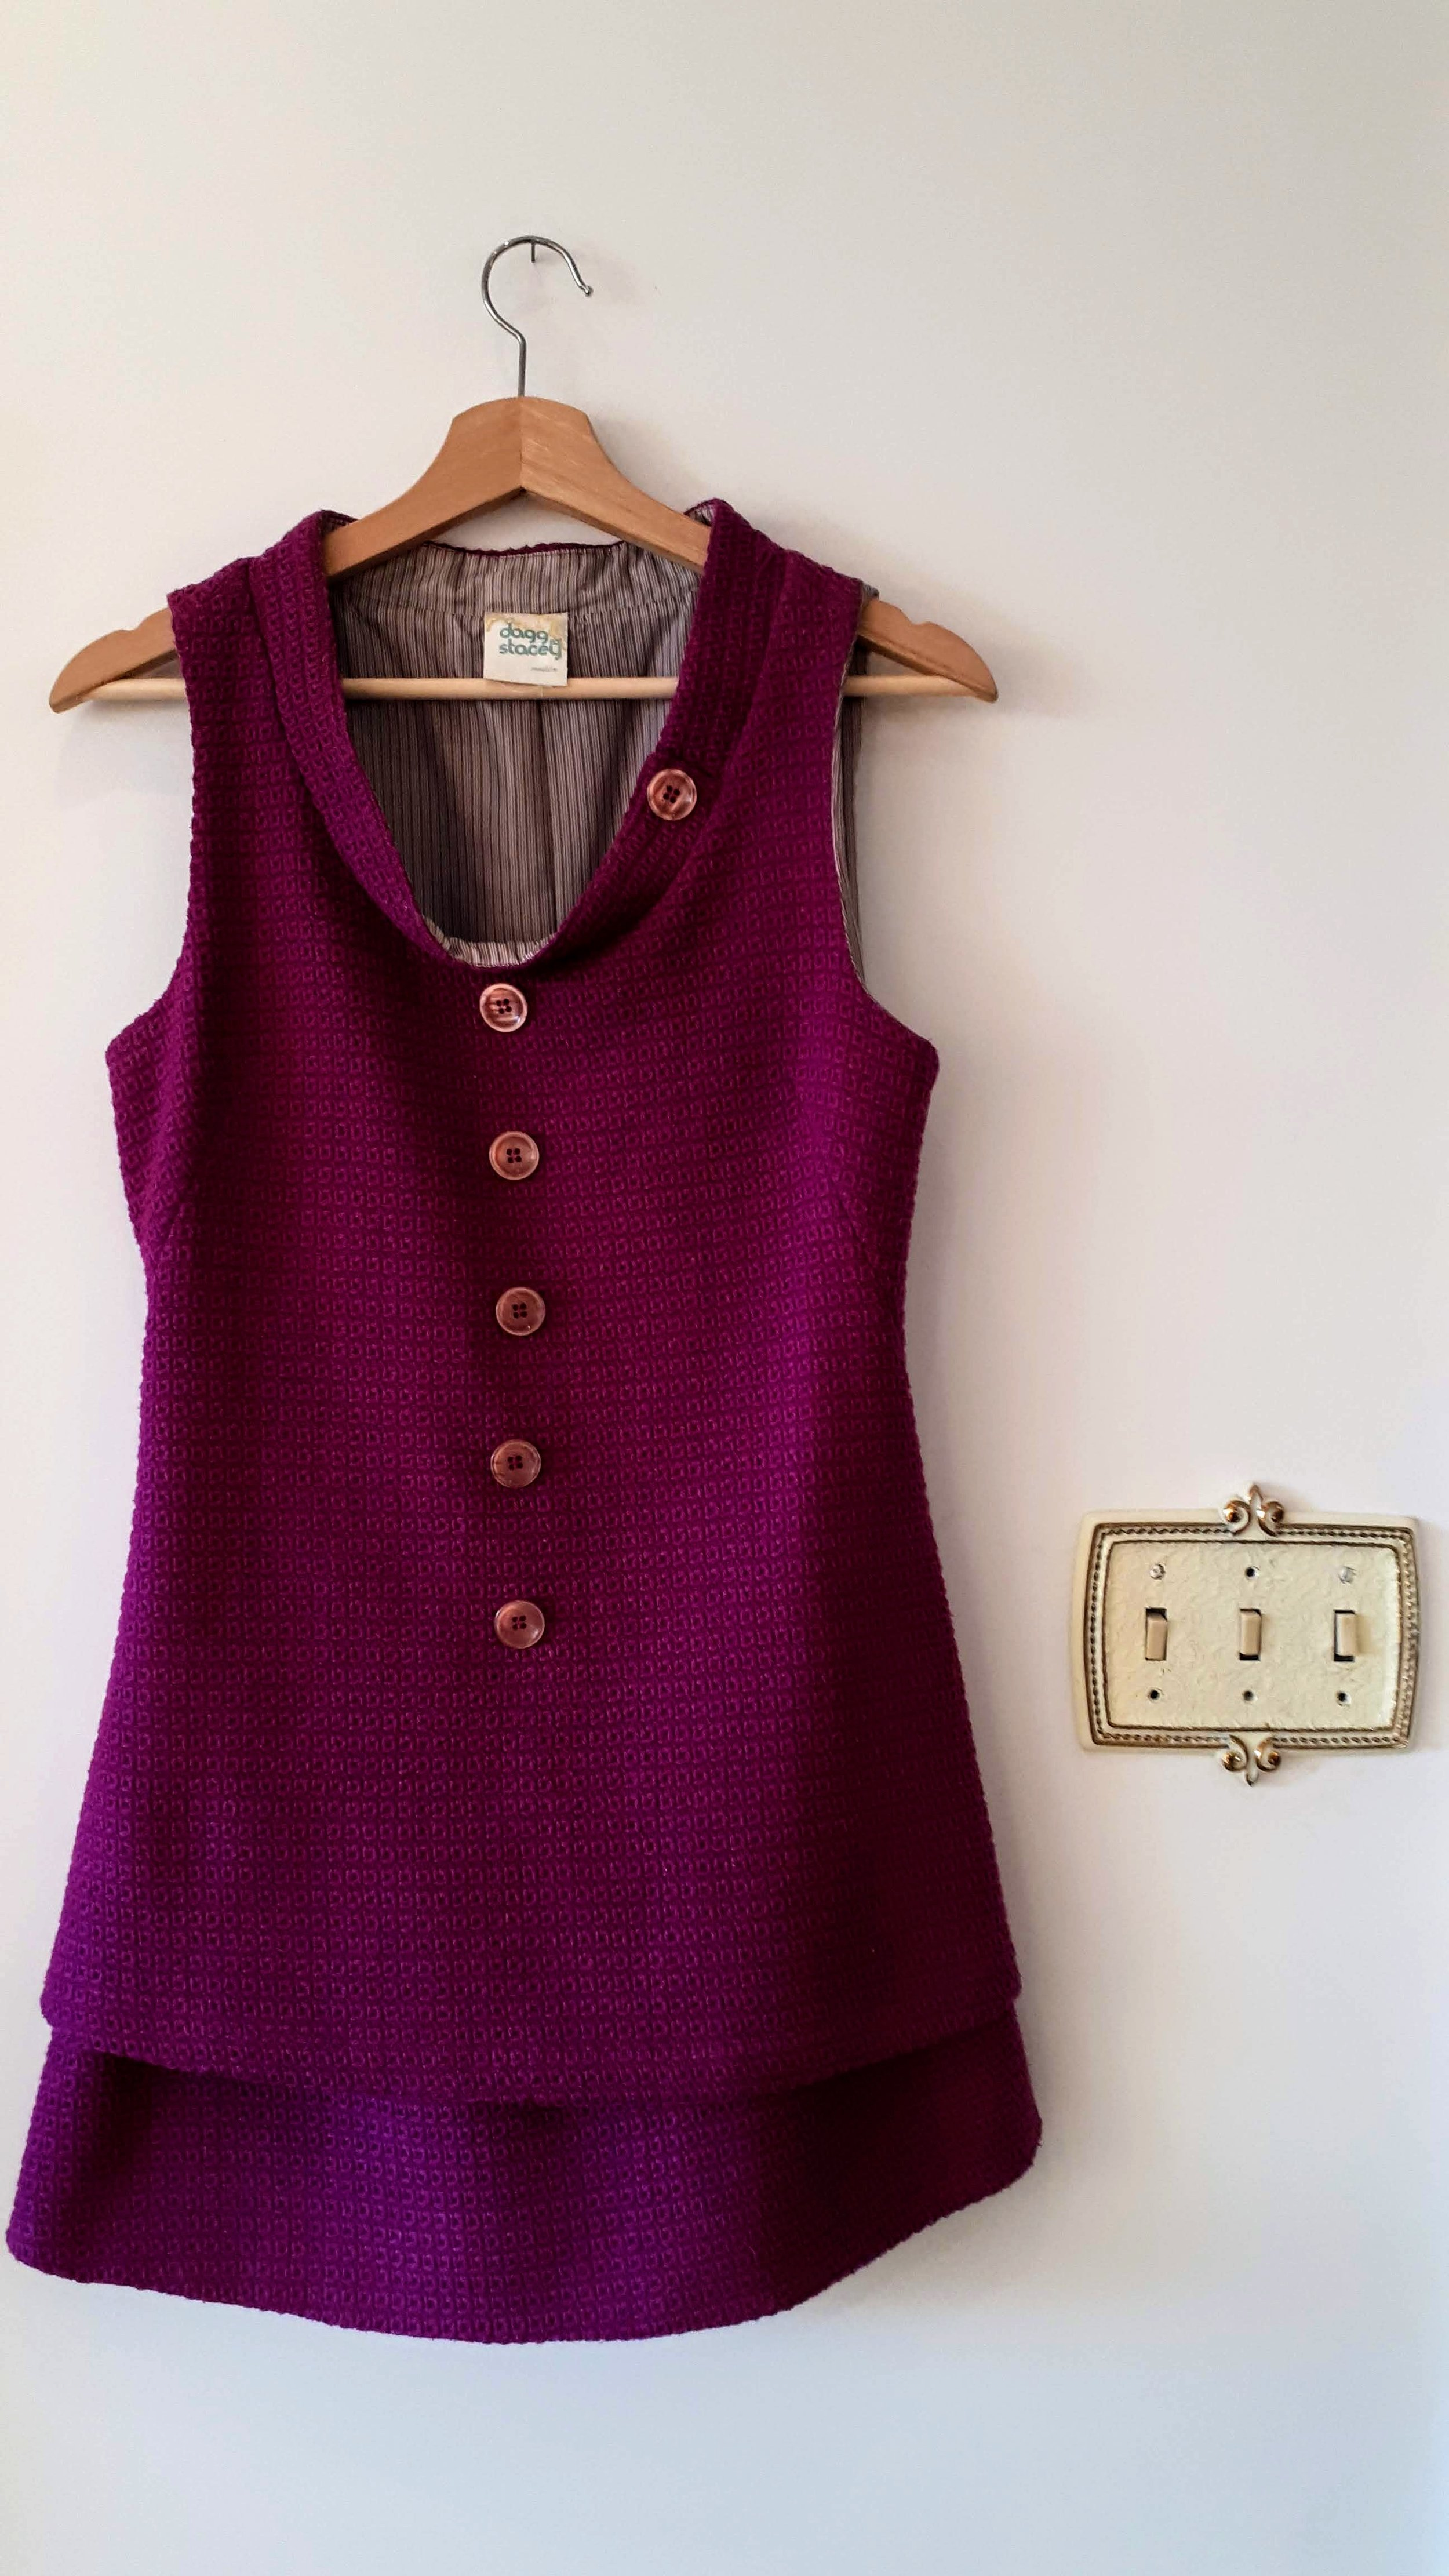 Dagg and Stacey dress; Size M, $38